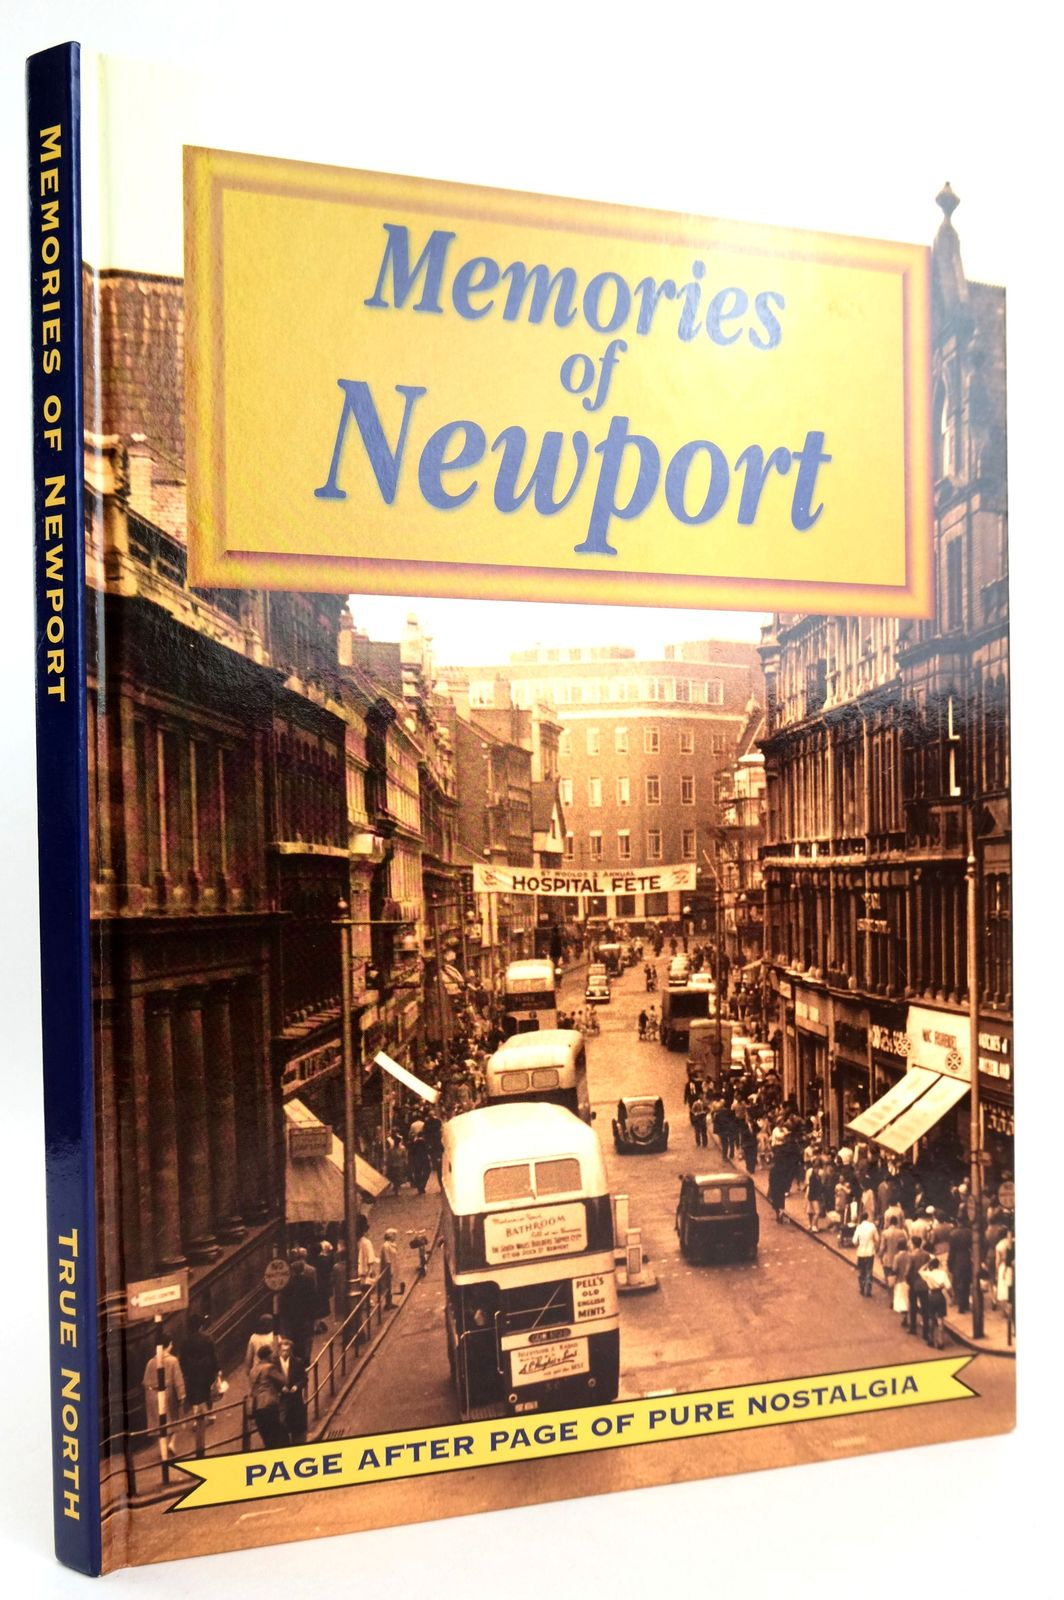 Photo of MEMORIES OF NEWPORT published by True North (STOCK CODE: 1819075)  for sale by Stella & Rose's Books